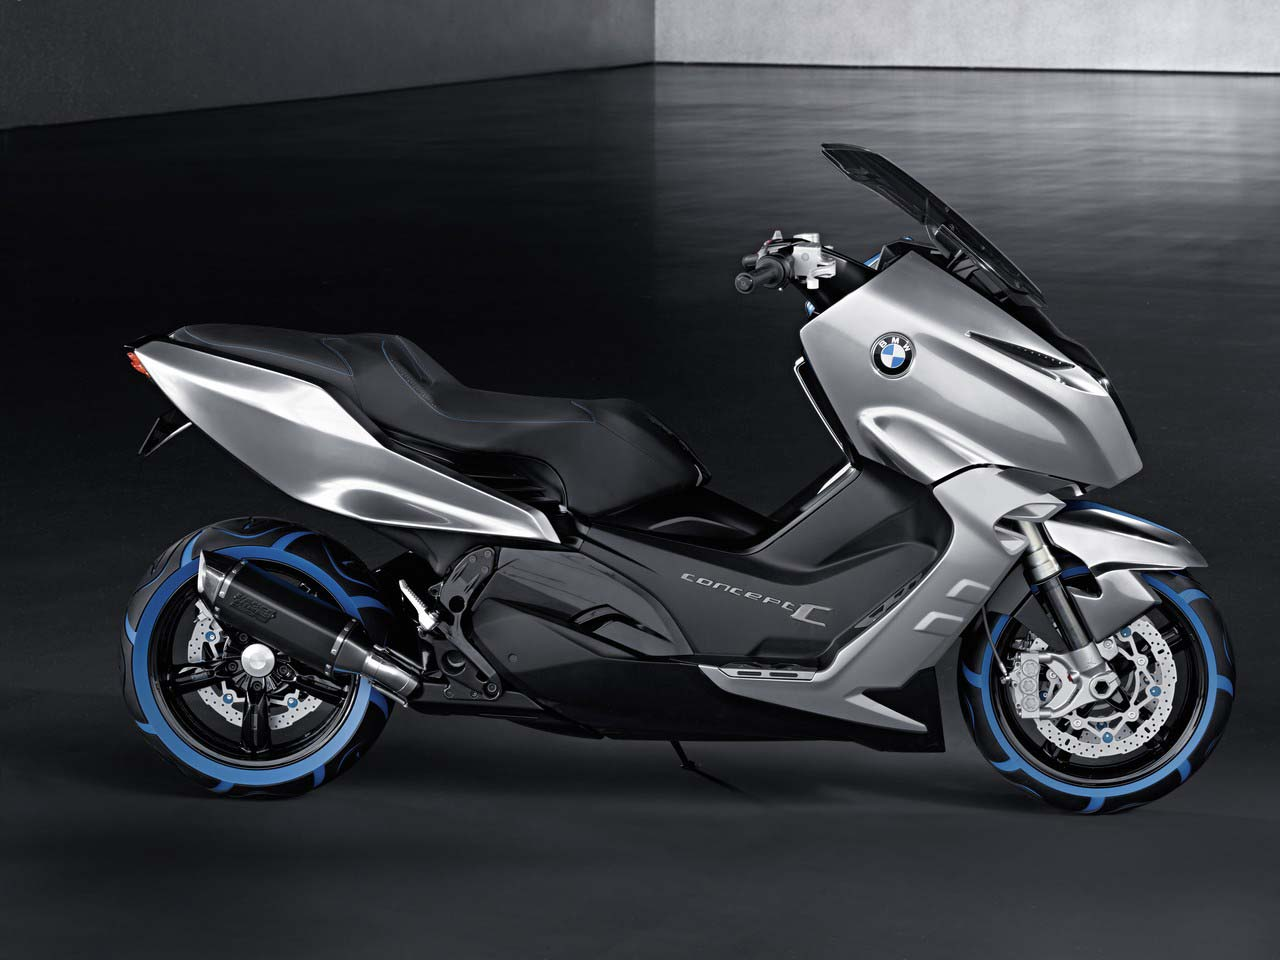 Bmw Concept C Making Scooters Look Cool Asphalt Amp Rubber